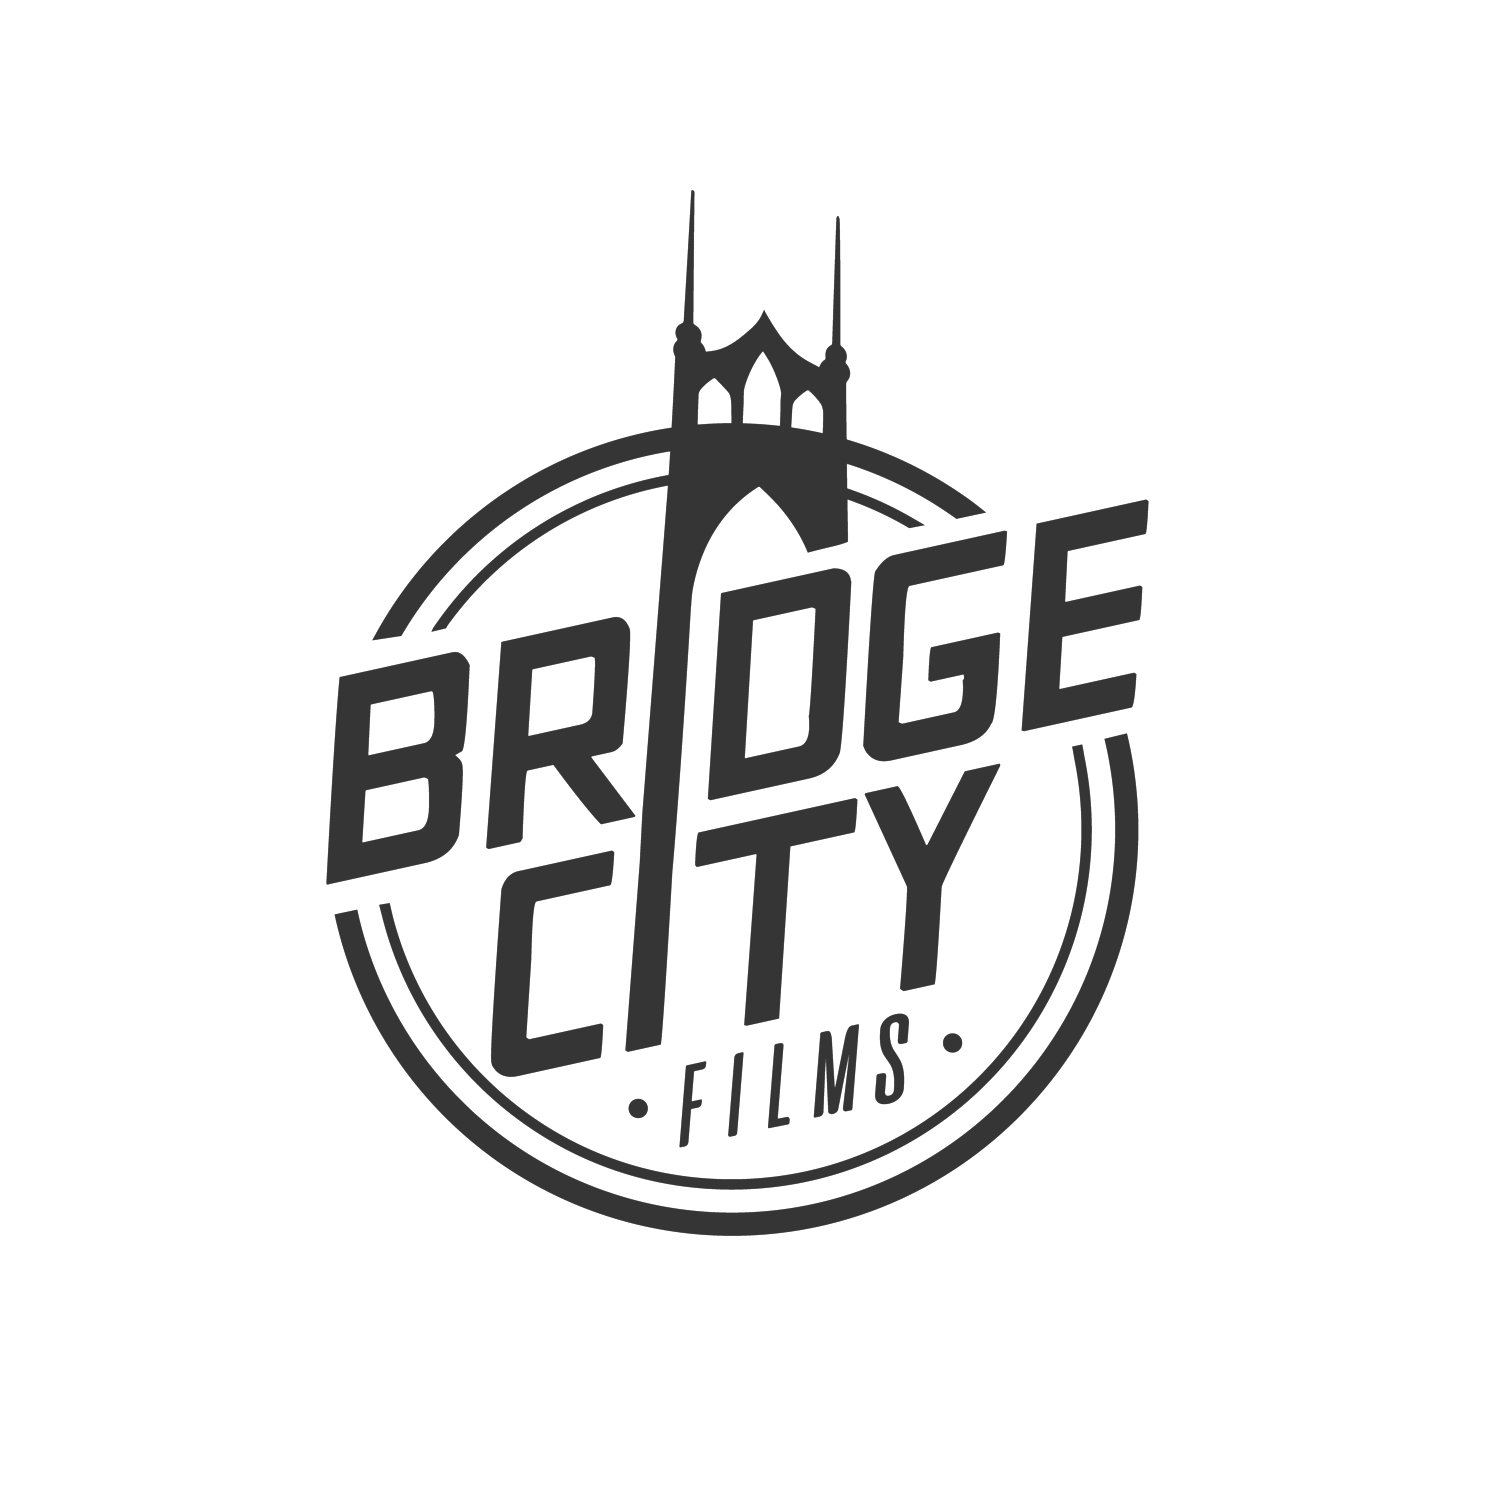 Bridge City Films